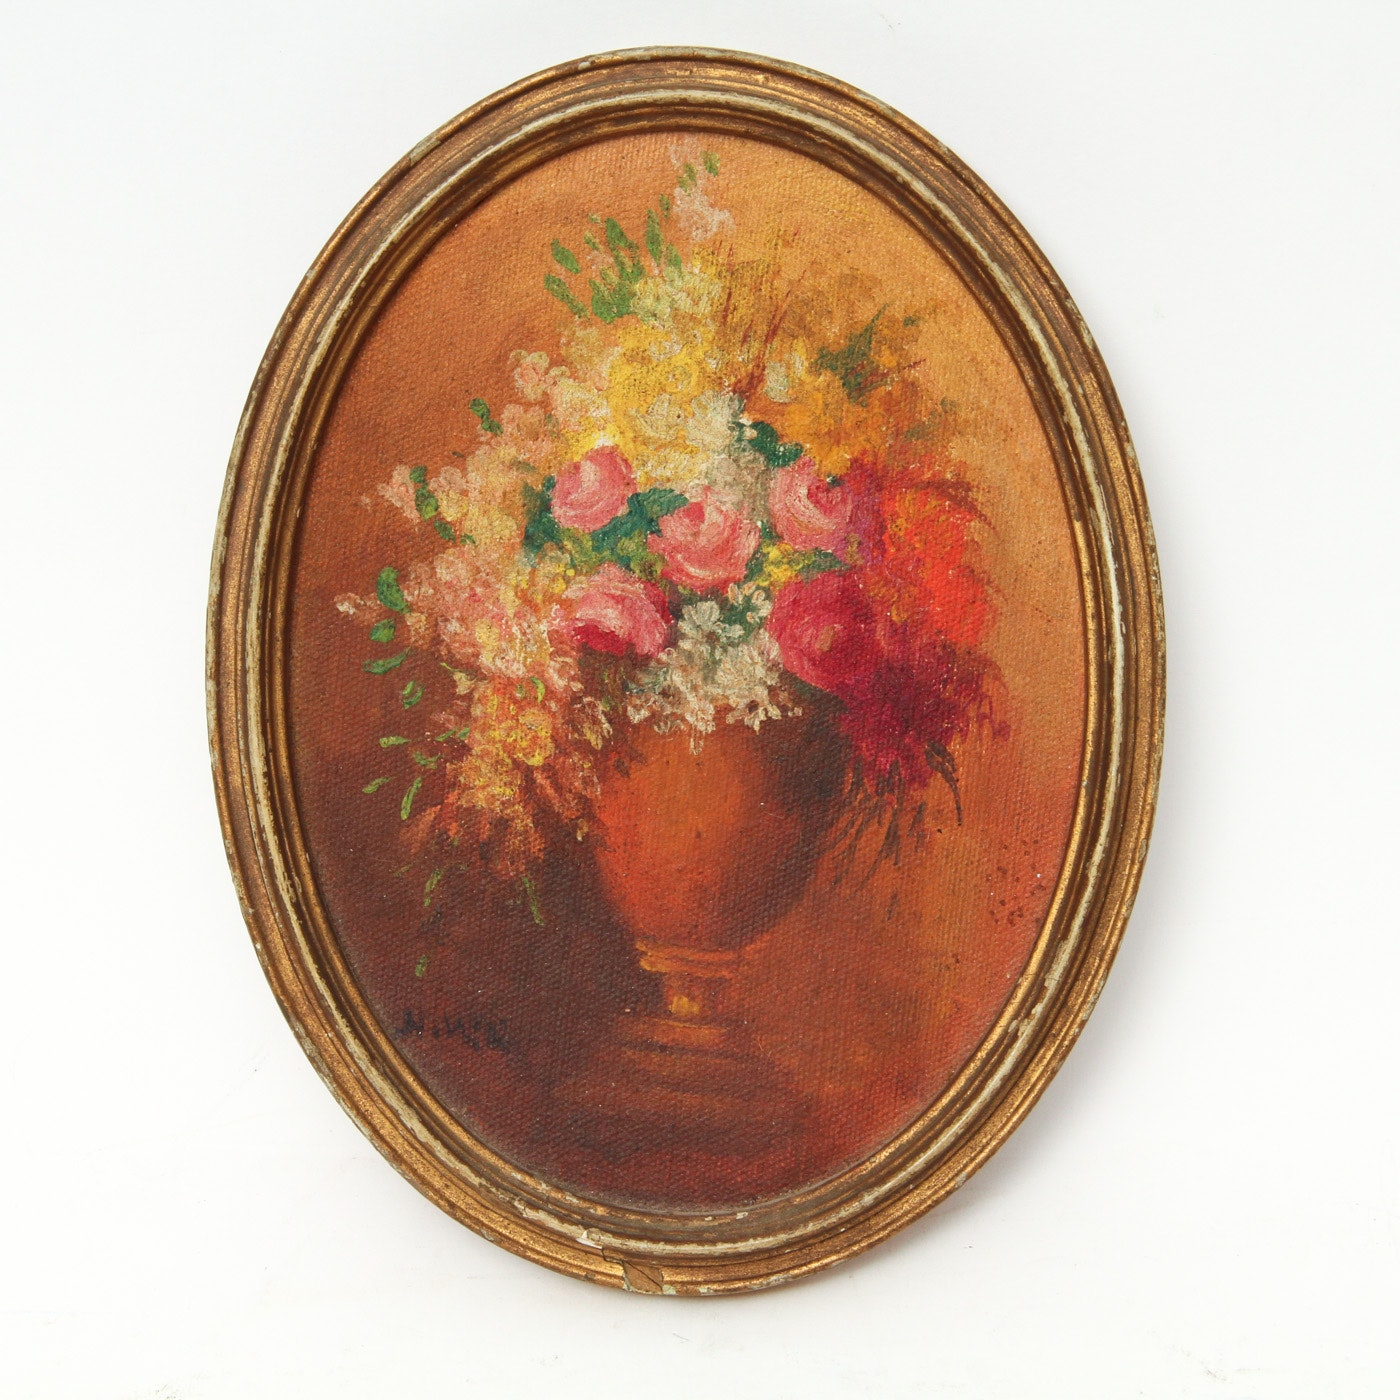 Antique Oil on Canvas Painting of a Floral Still Life